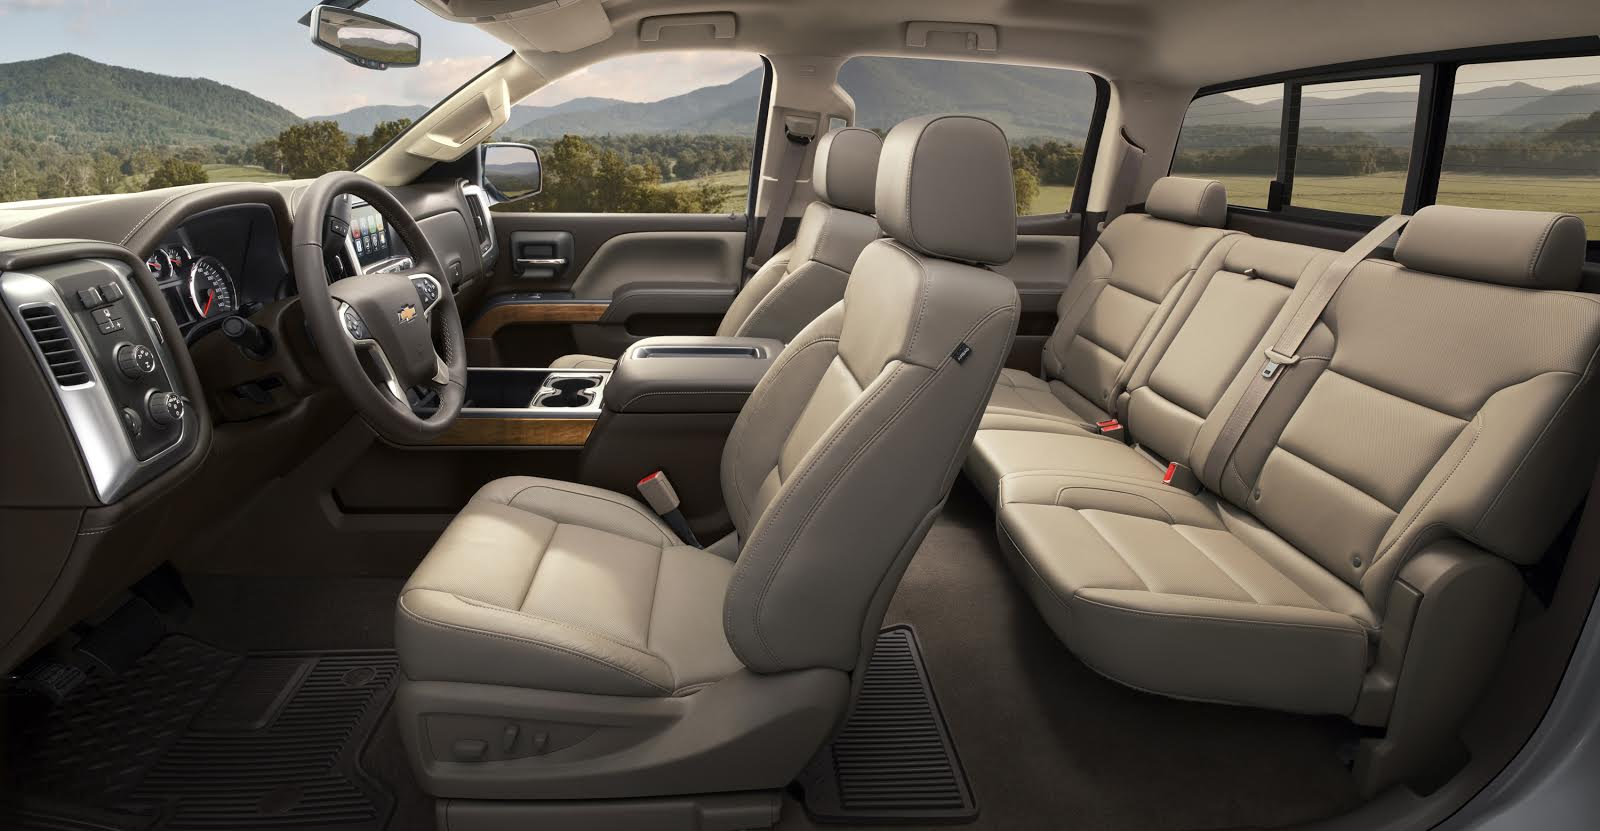 2015 Chevrolet Silverado HD Interior.